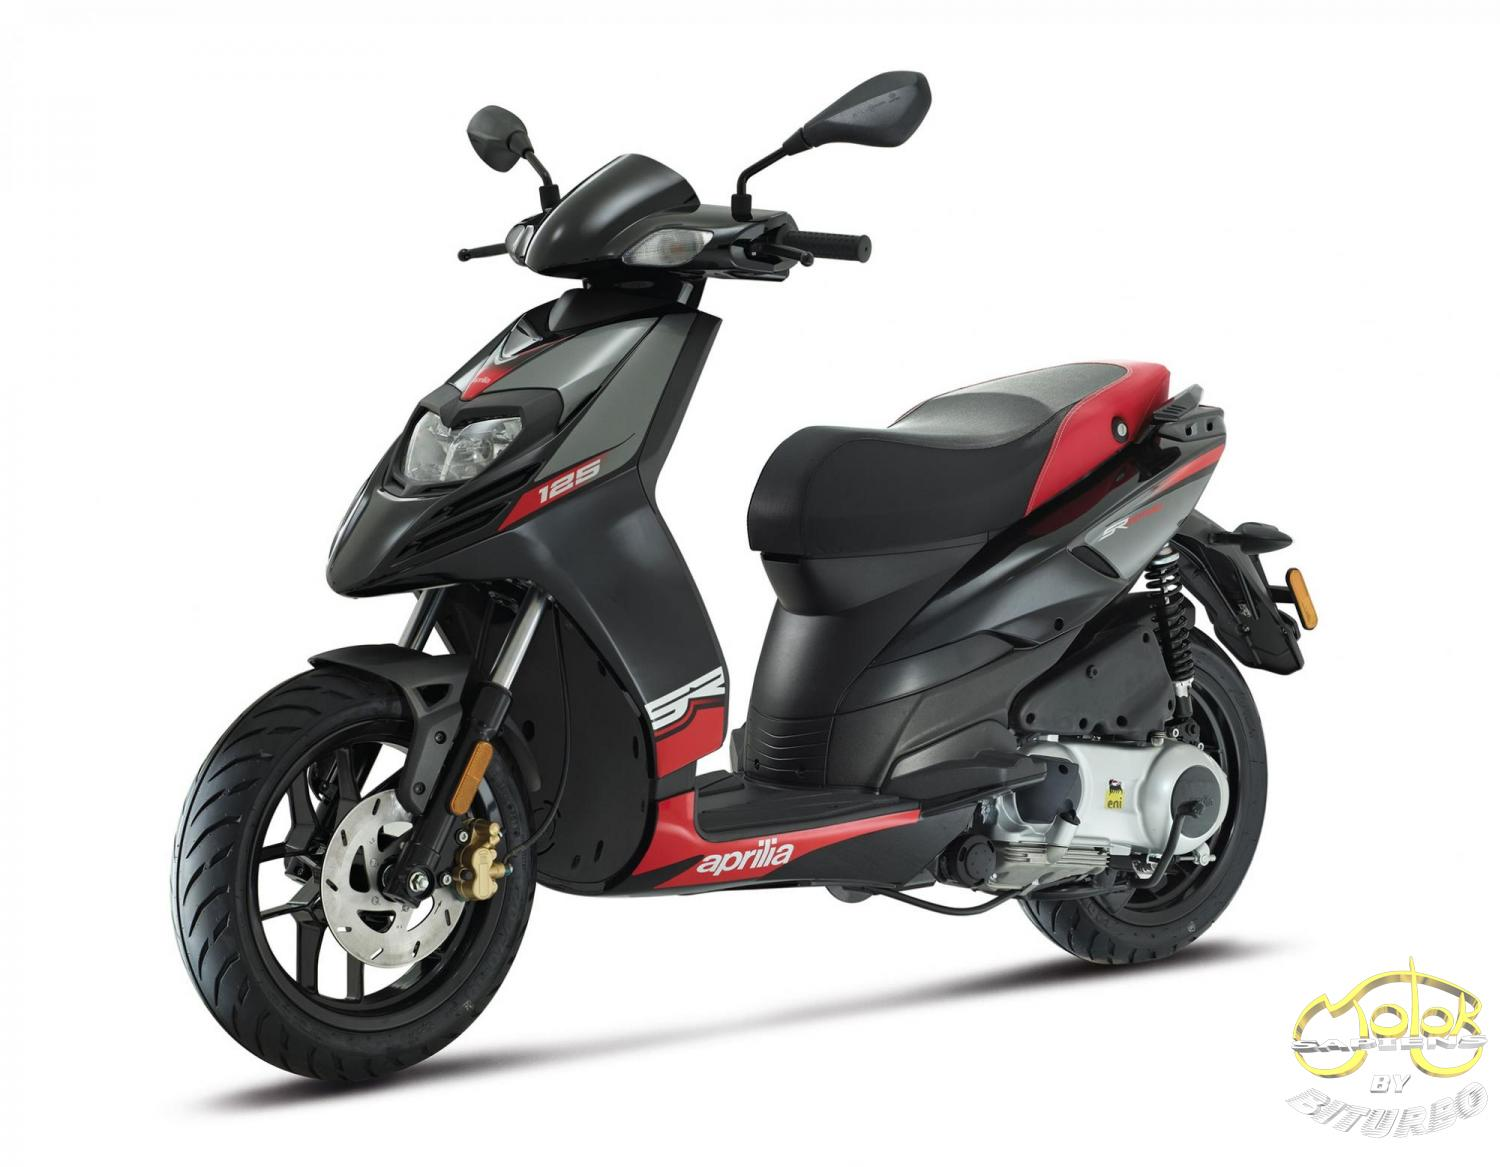 j aprilia sr motard 50 robog elad 649 900 ft. Black Bedroom Furniture Sets. Home Design Ideas